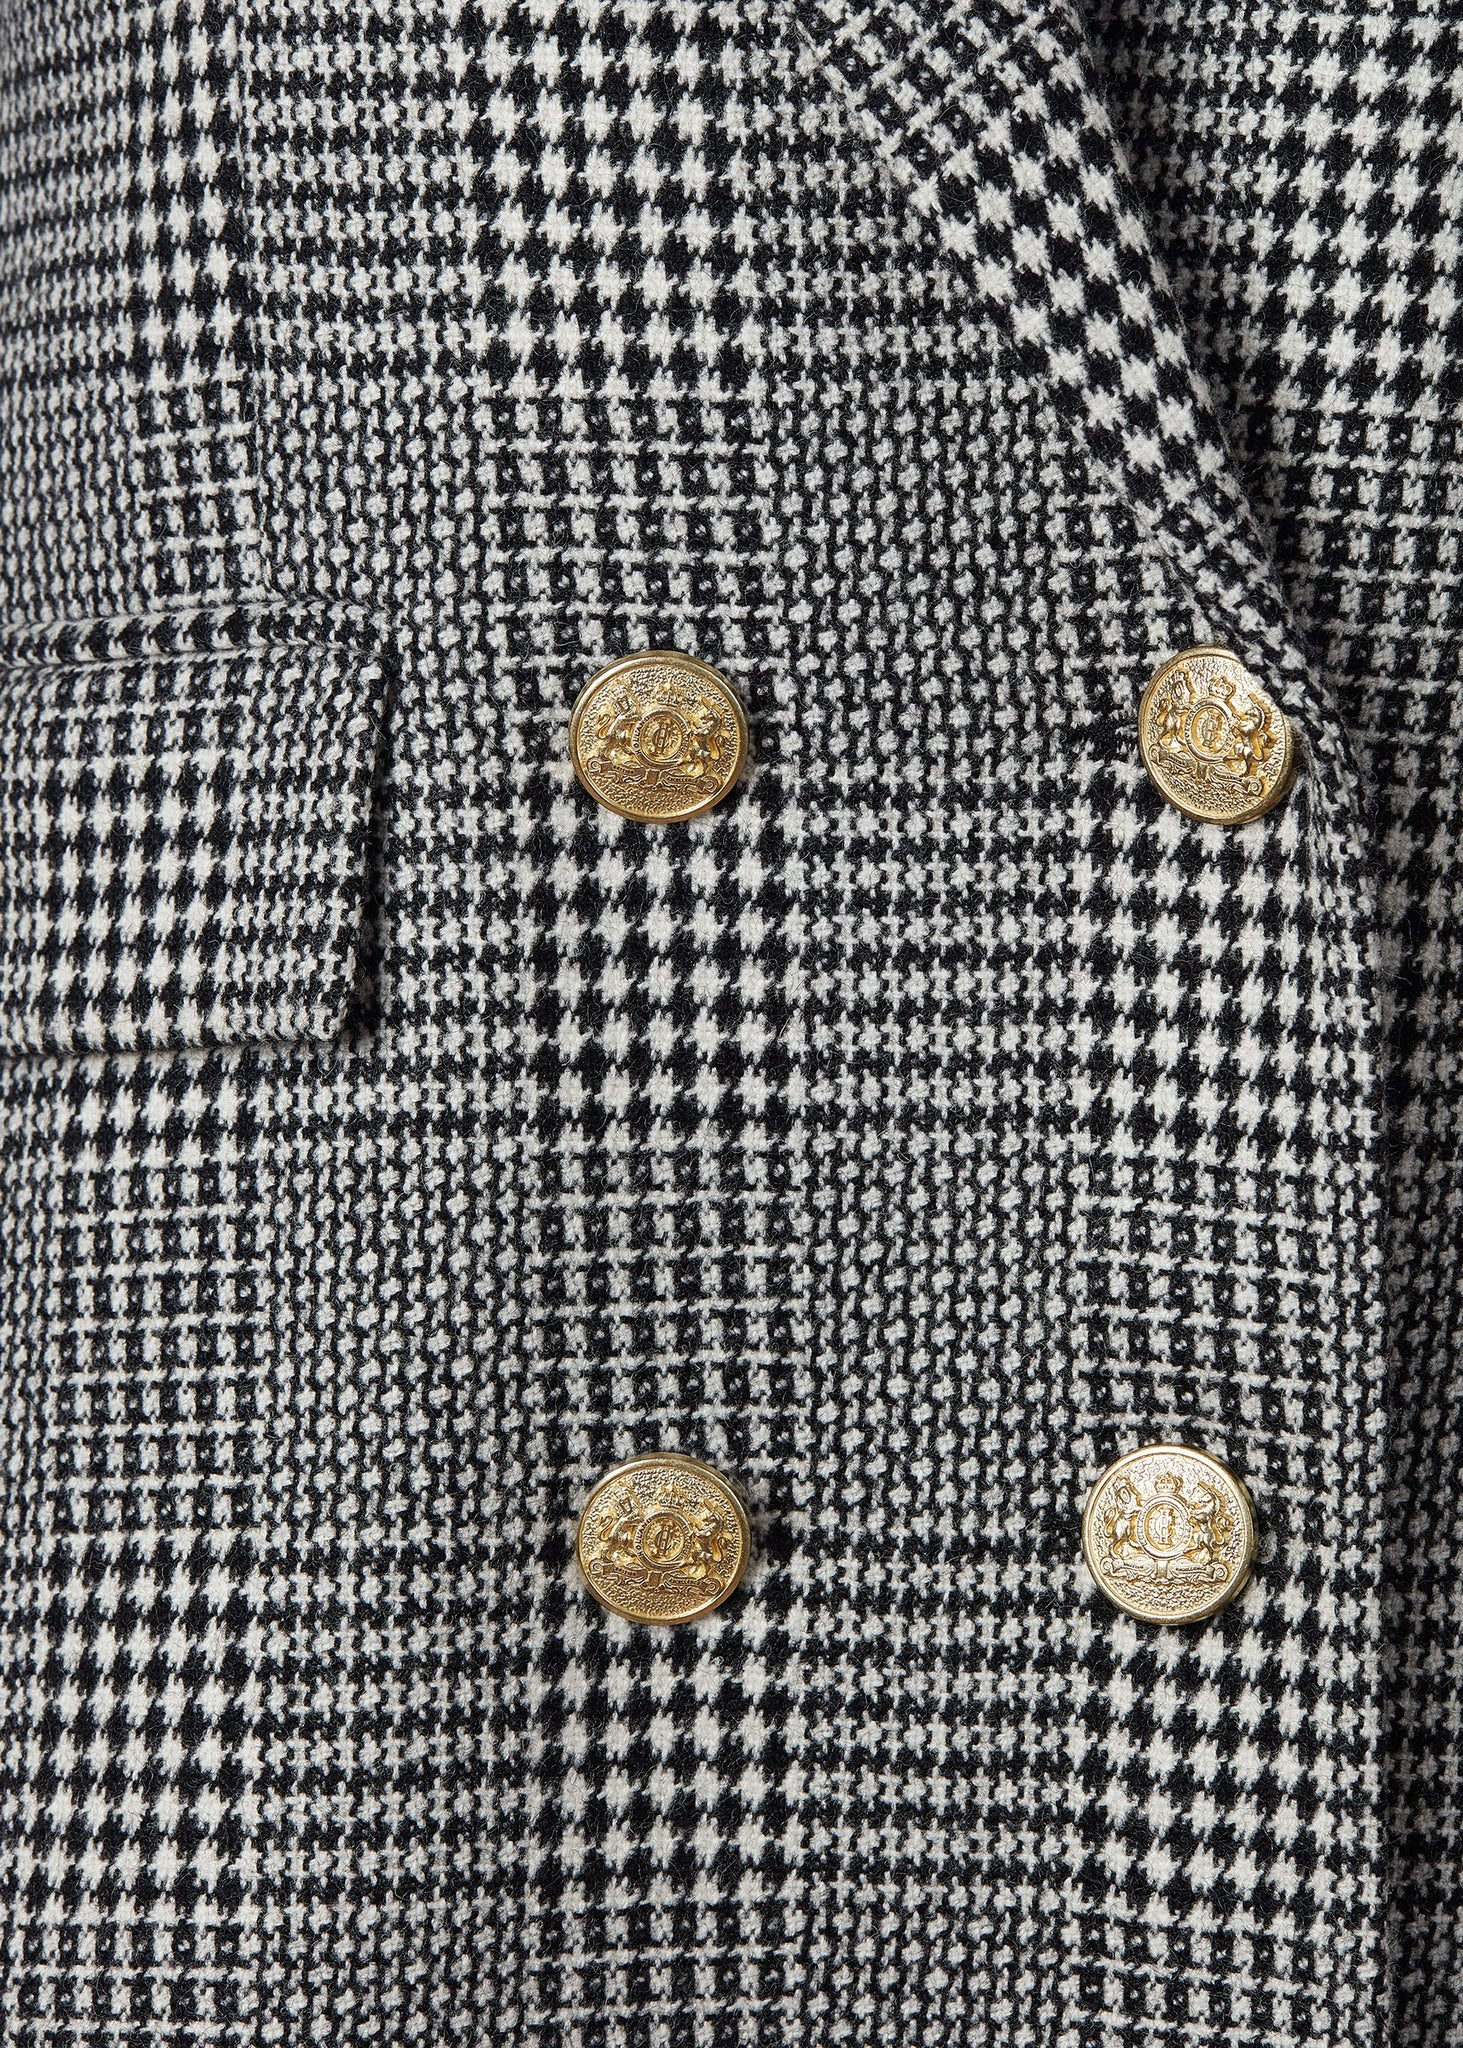 Double Breasted Blazer (Prince of Wales Mono)